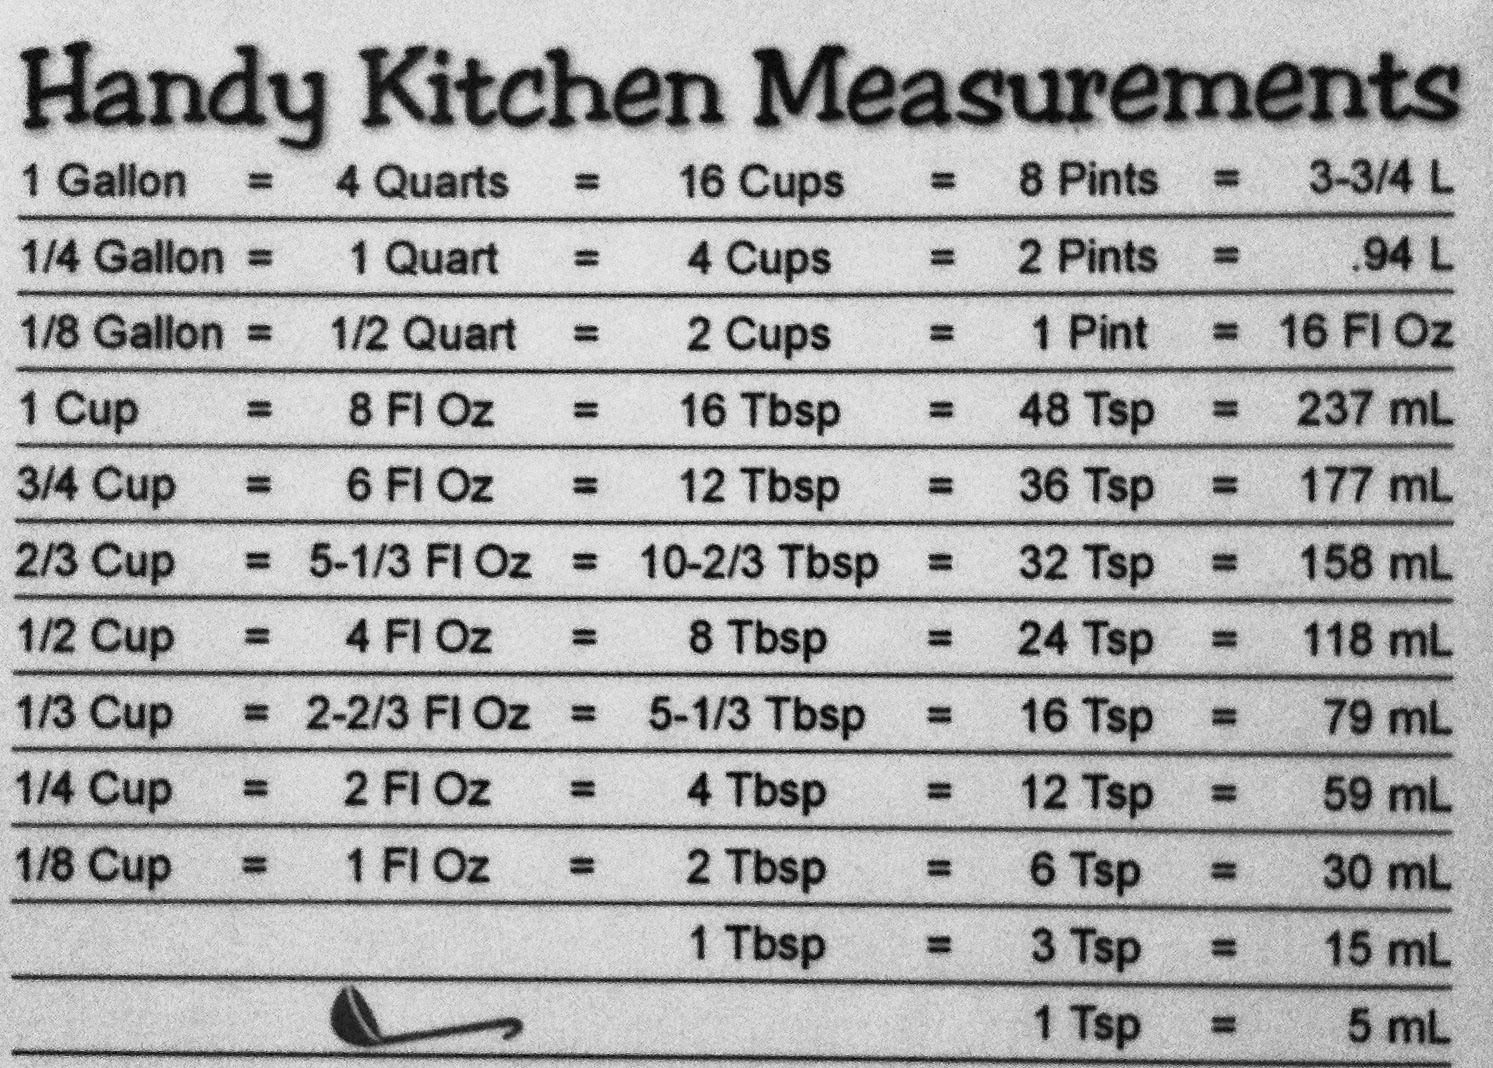 Cooking measurement table remedies and tips pinterest cooking cooking measurement table measurement chartkitchen measurement conversionskitchen nvjuhfo Images